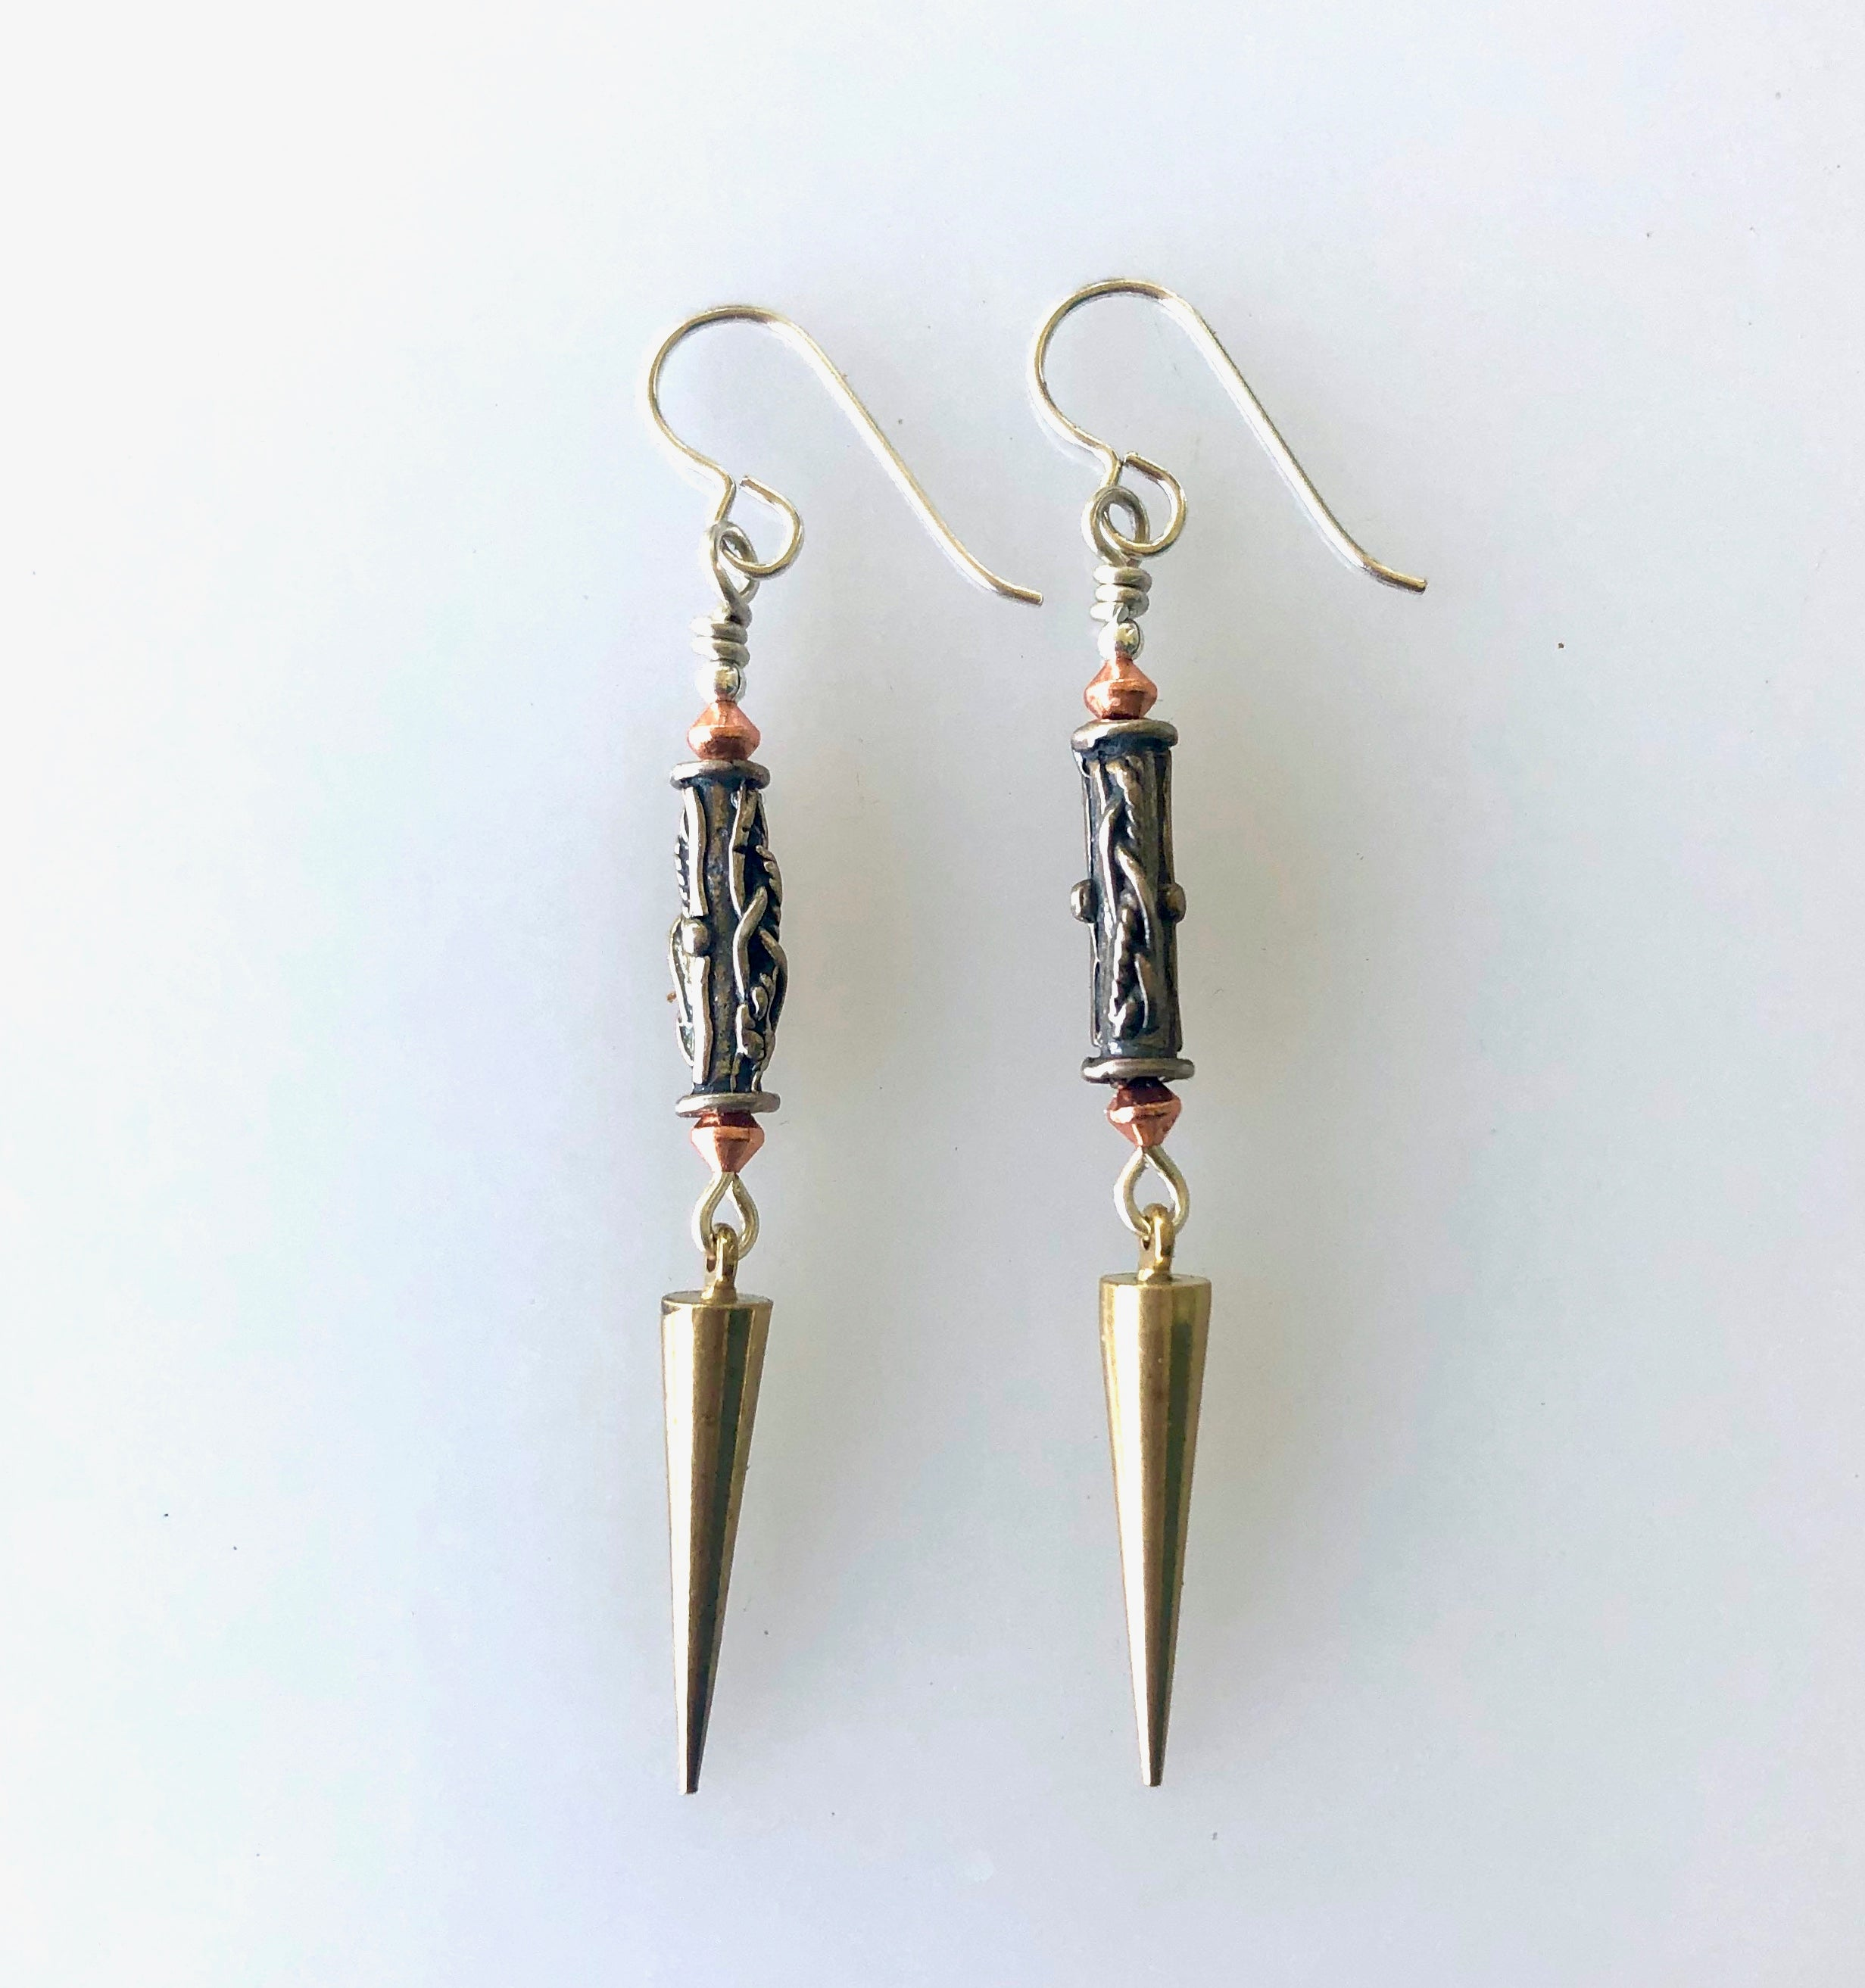 Dangle Earrings with Israeli and French Findings